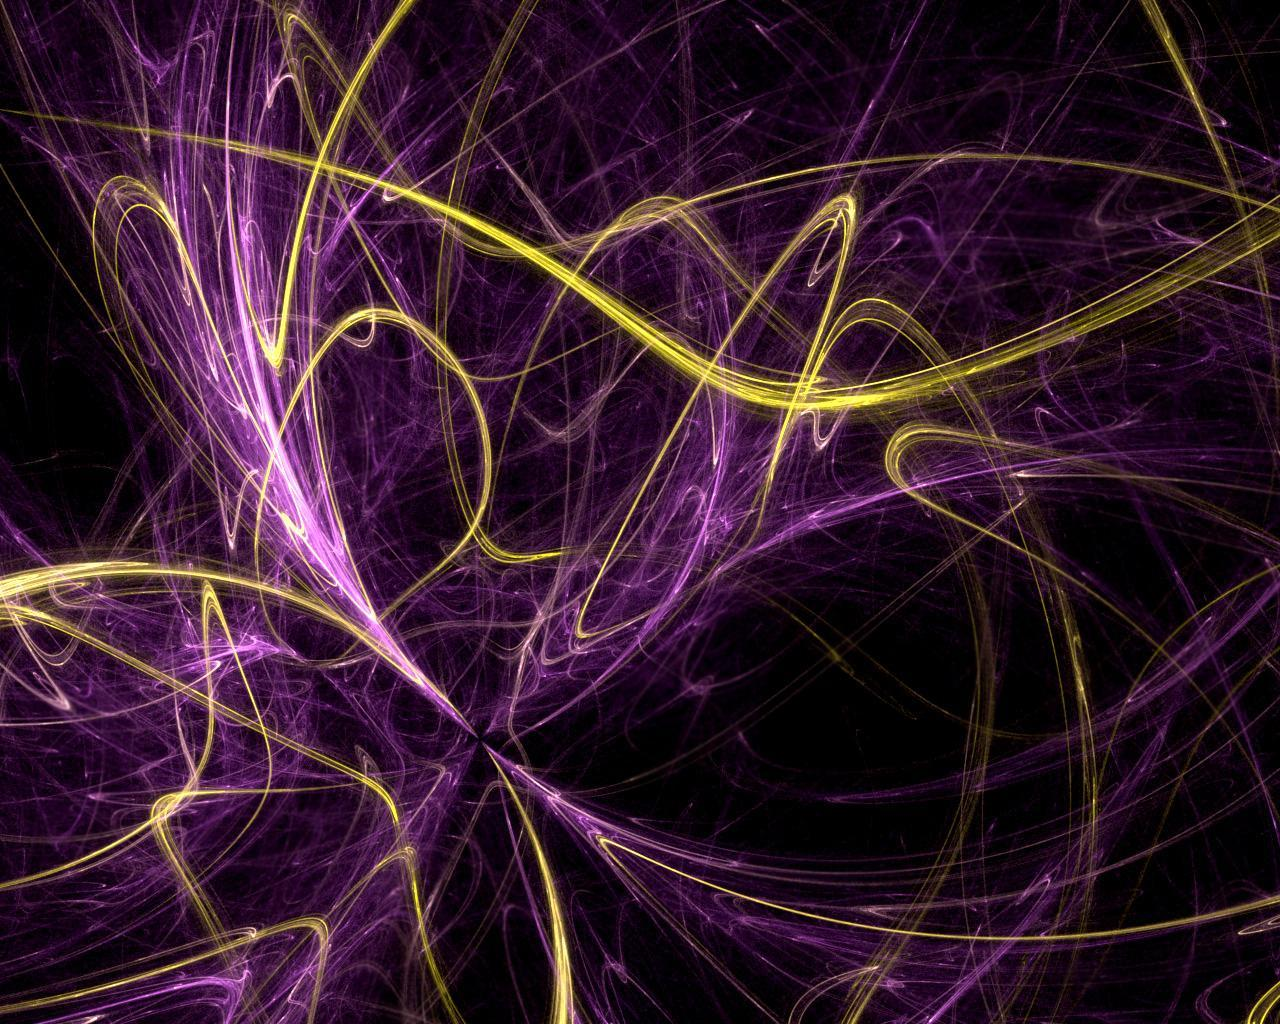 Purple and Gold Swirls Background Backgrounds for Facebook 1280x1024